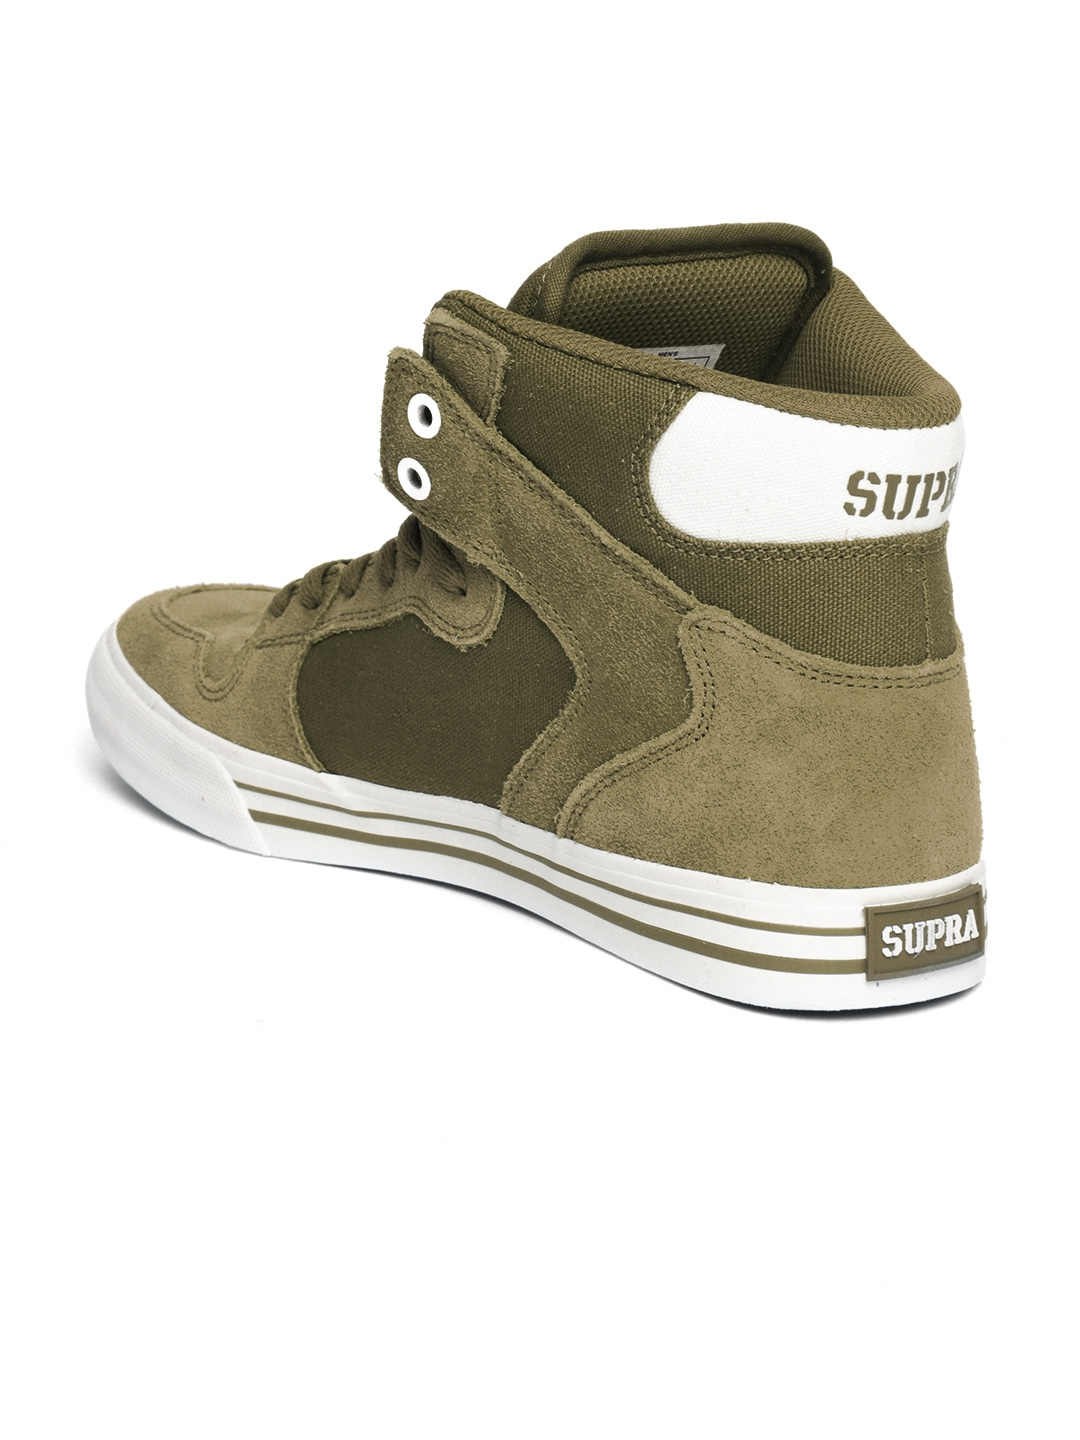 cdf3c15964c4 Buy Supra Men Olive Green VAIDER High Top Sneakers - Casual Shoes ...